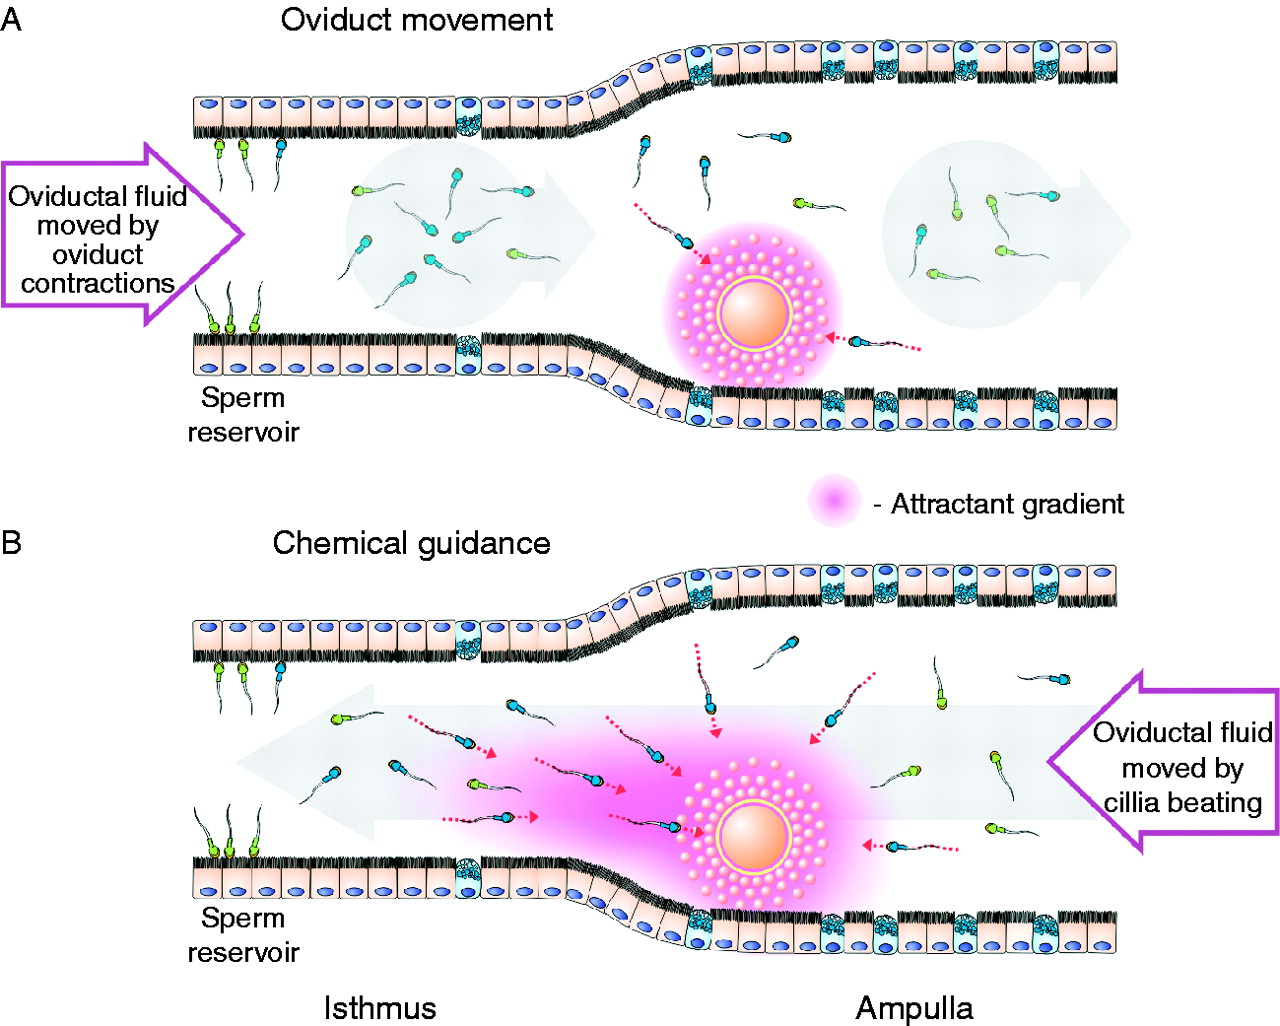 sperm transport and retention at the fertilization site is